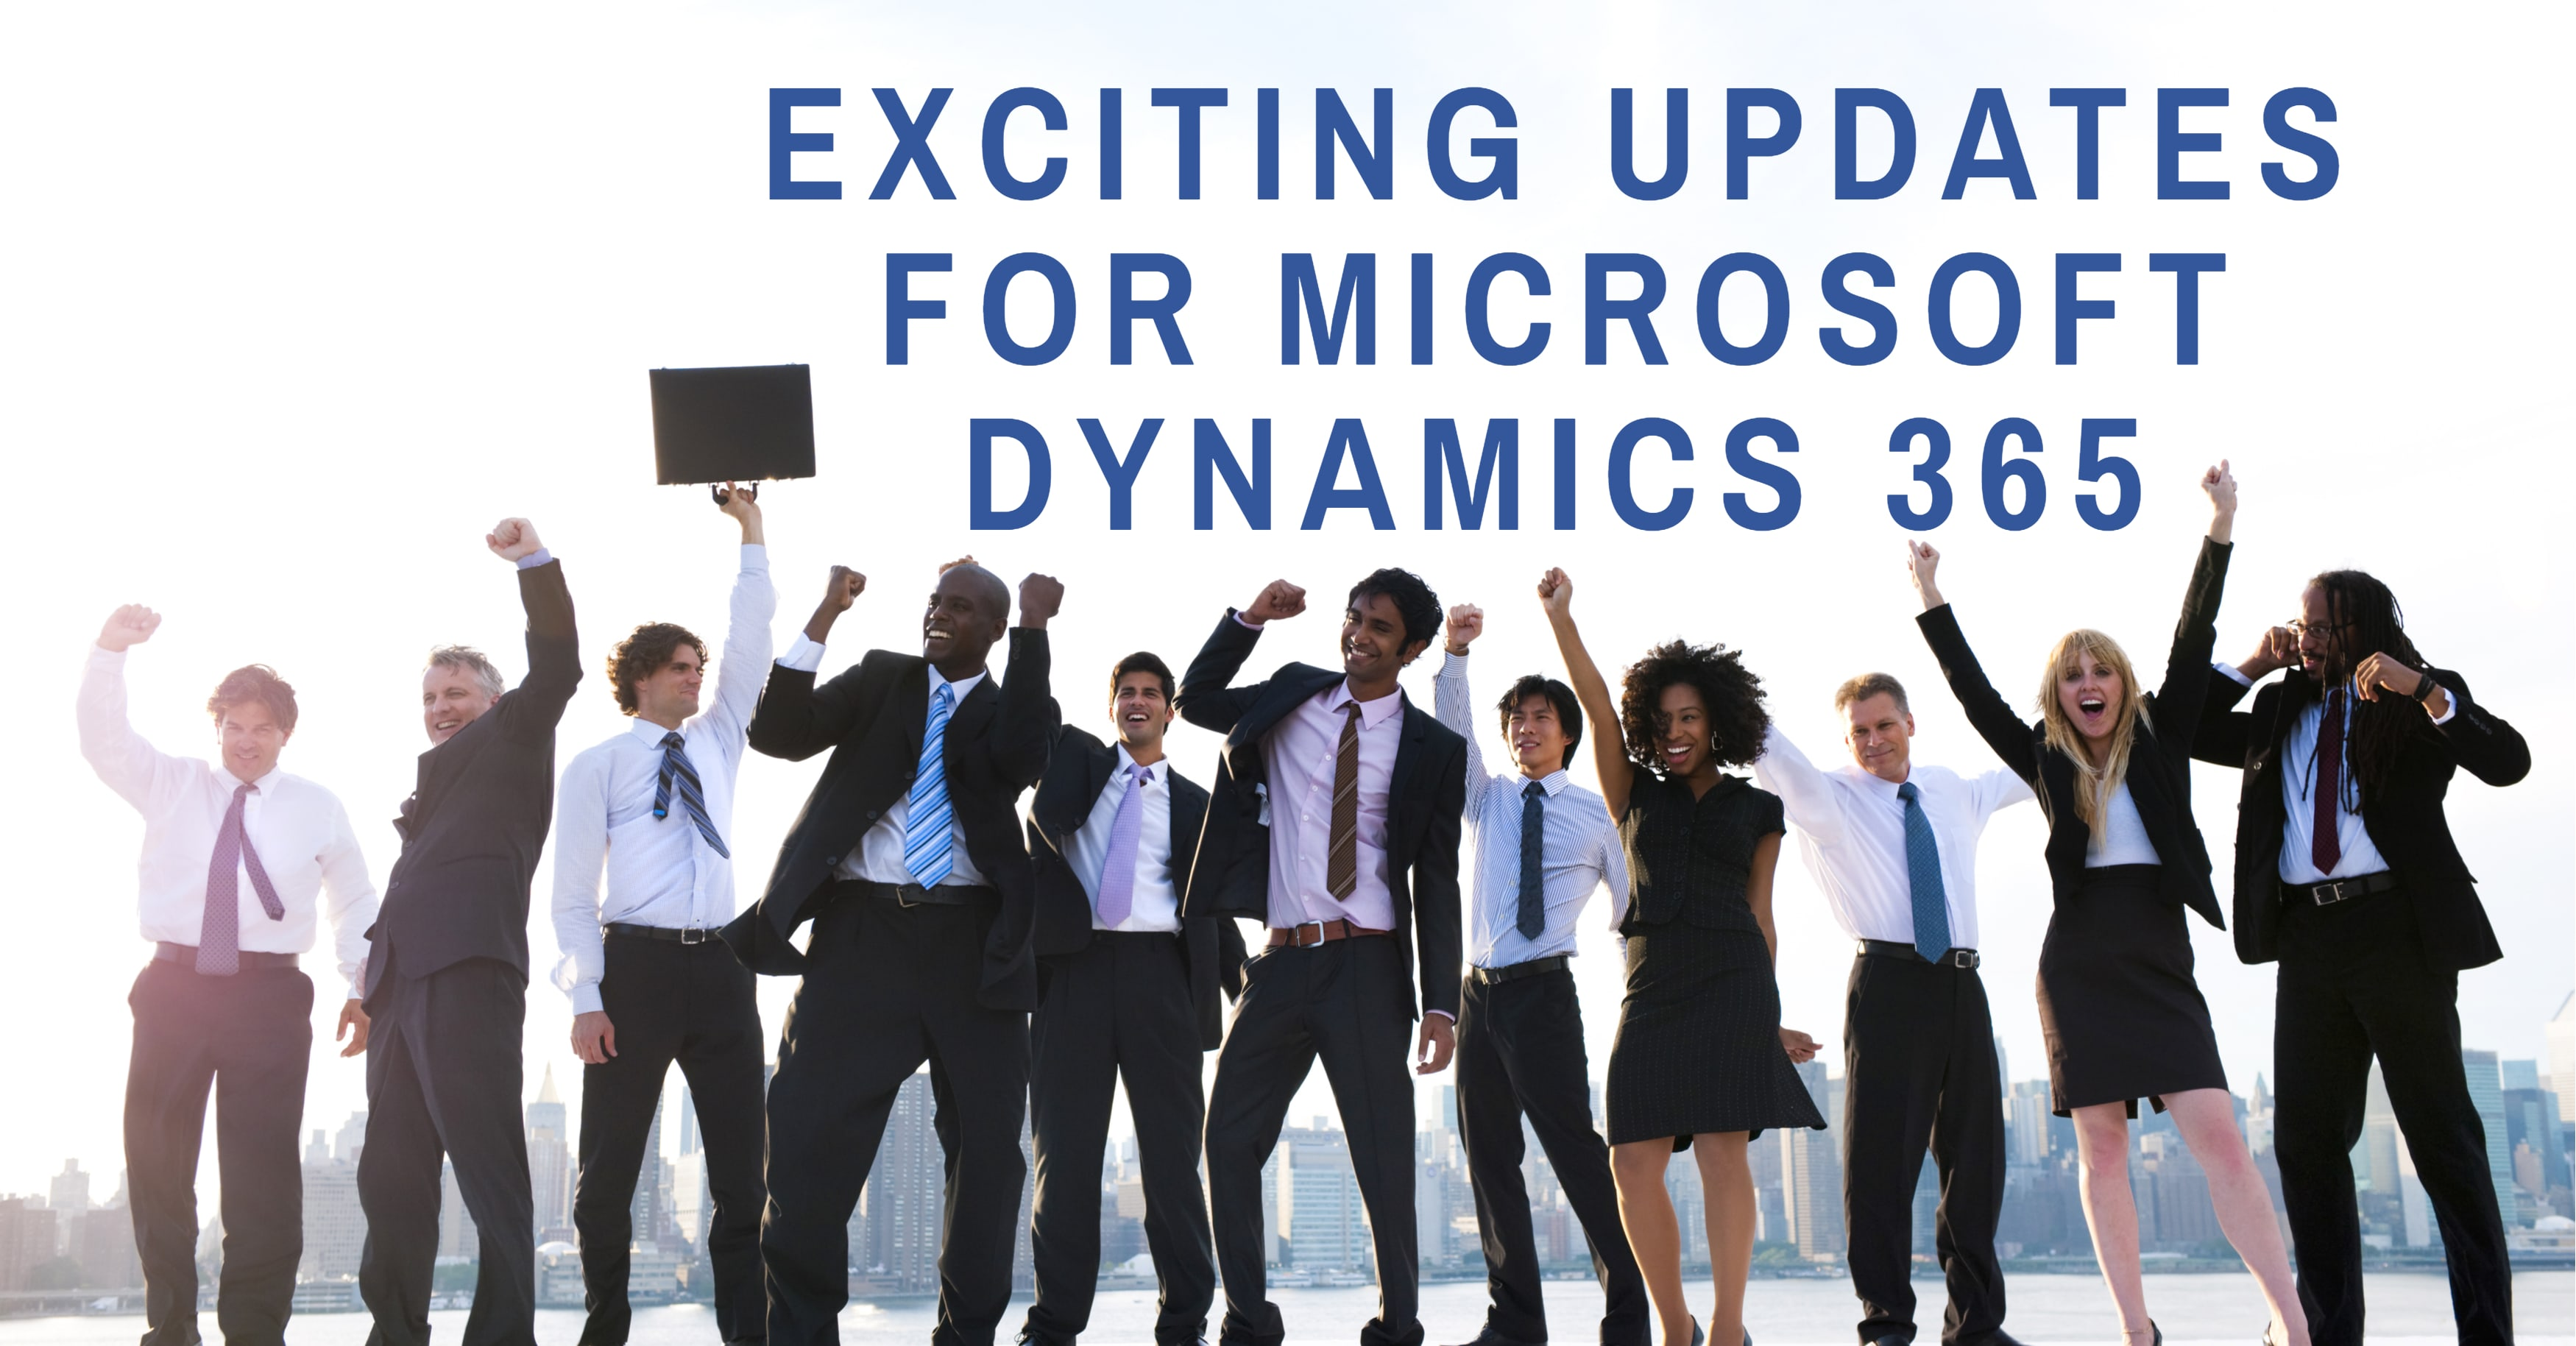 Exciting Updates for Microsoft Dynamics 365